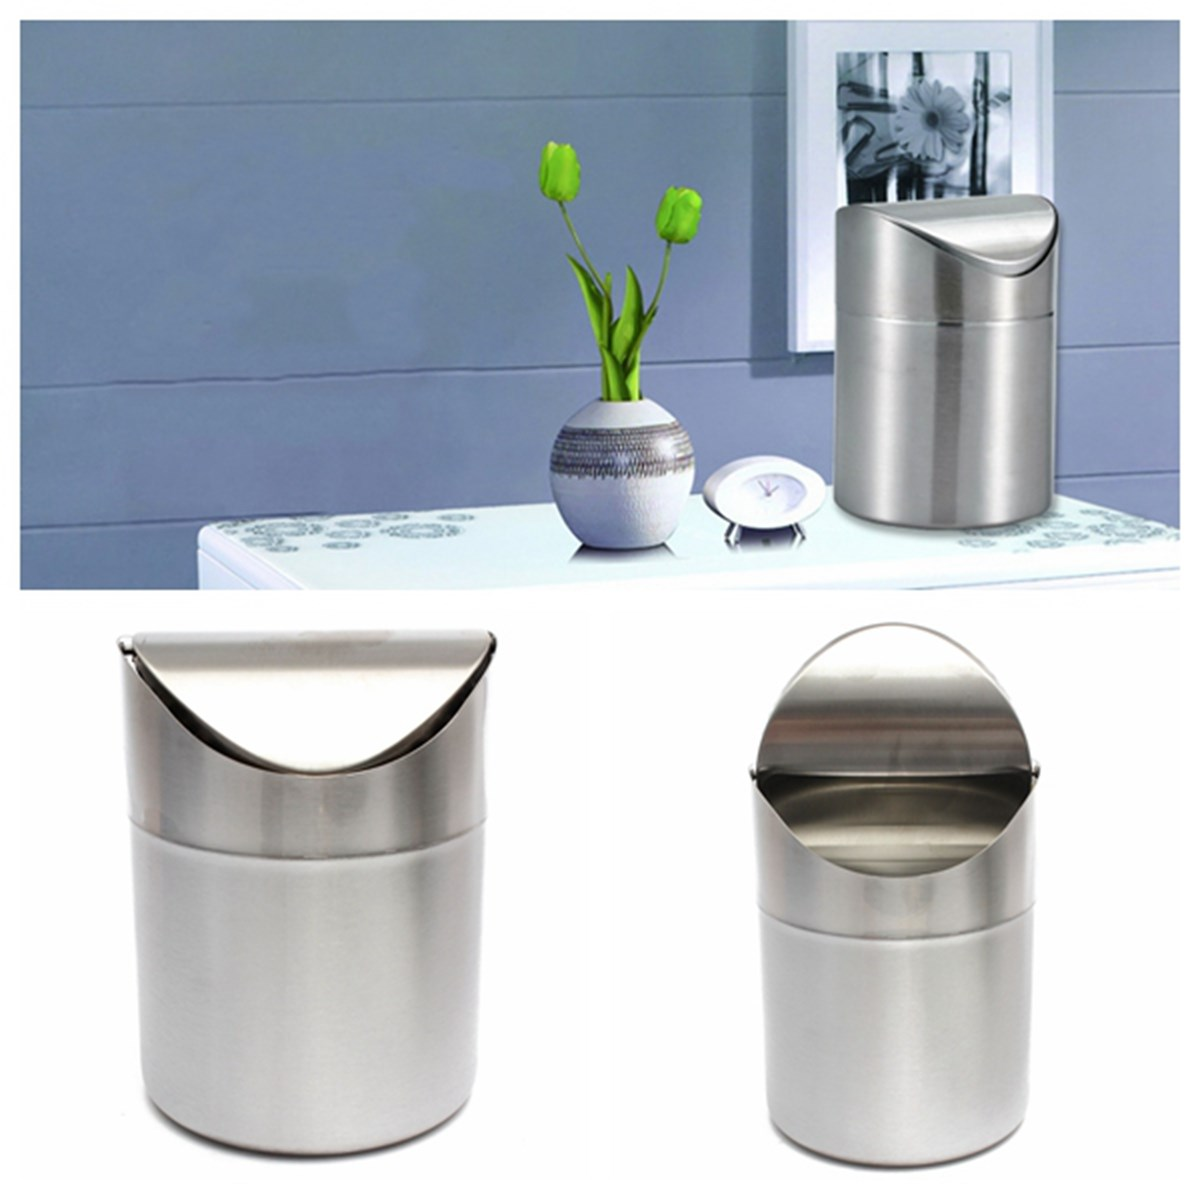 1 5l Home Small Recycling Bin Swing Lid Kitchen Table Tidy Stainless Steel Dustbin Trash Can